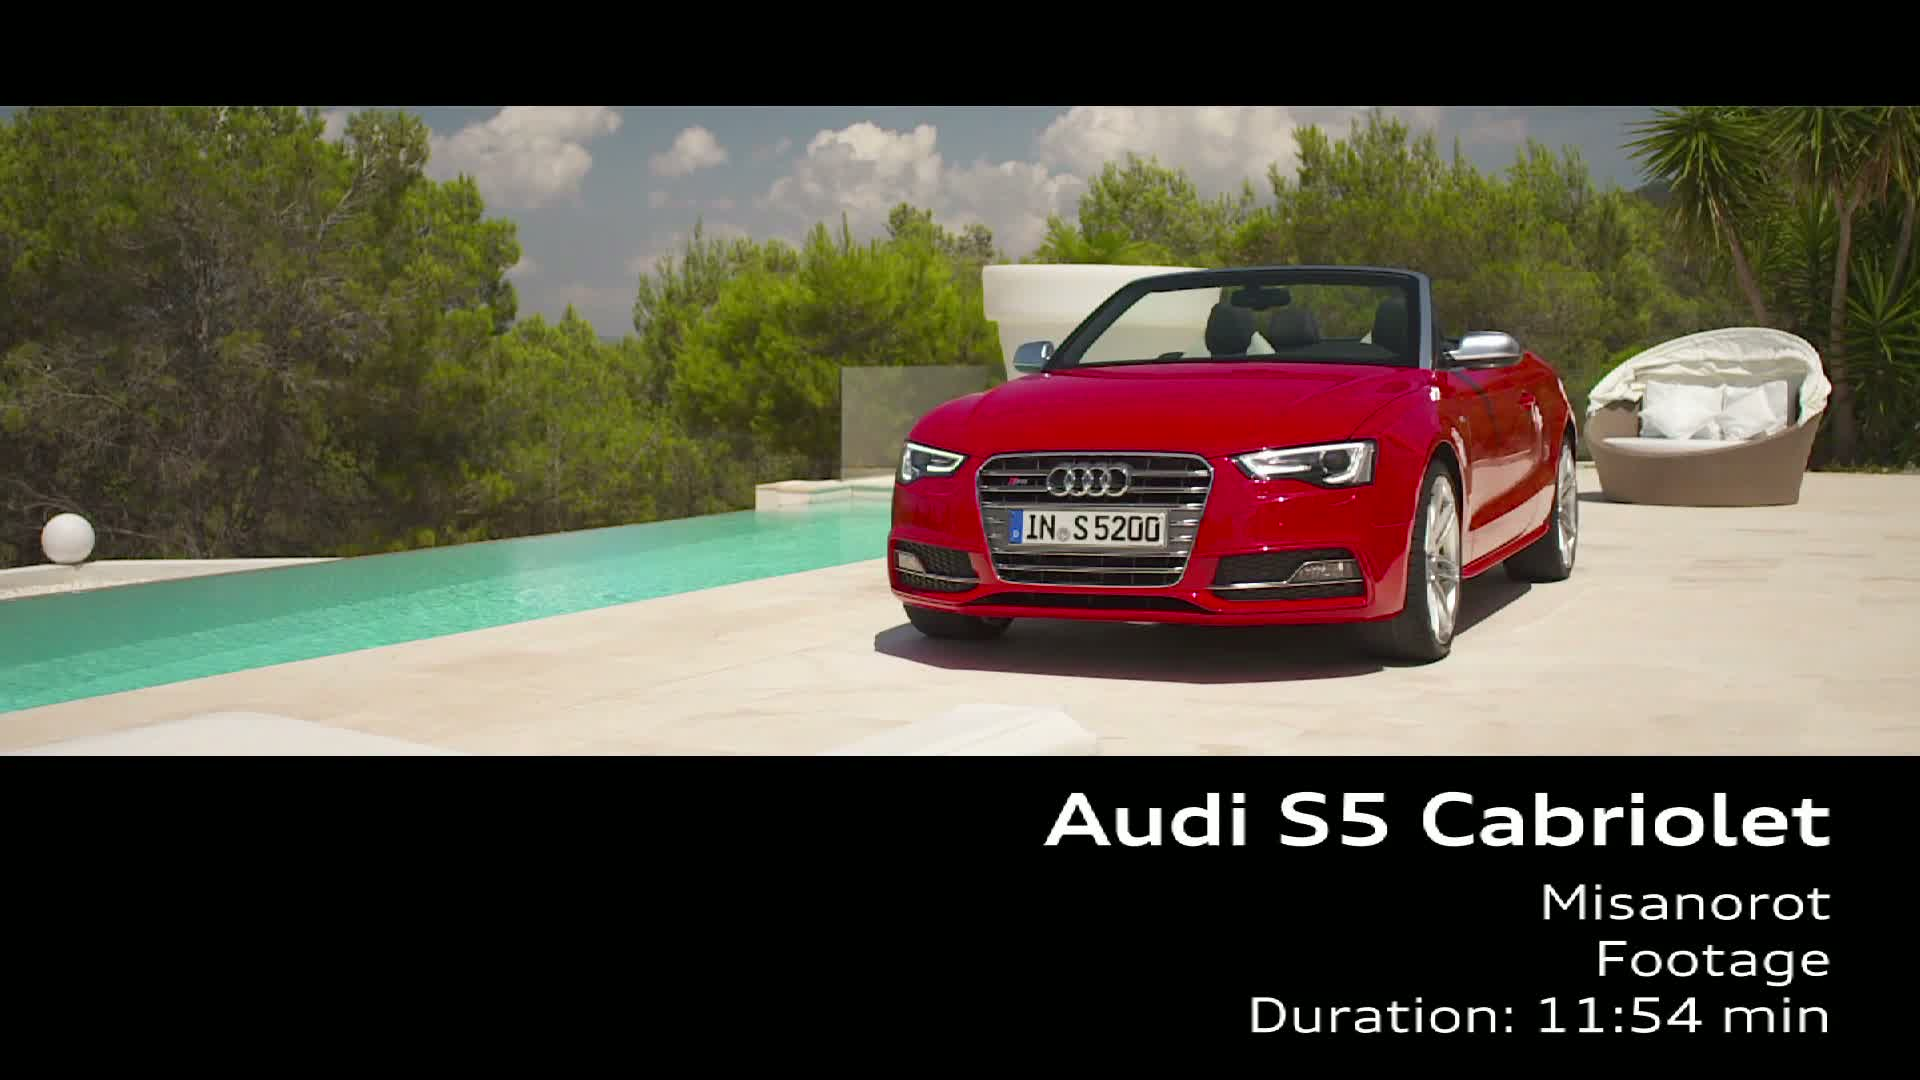 The Audi S5 Cabriolet